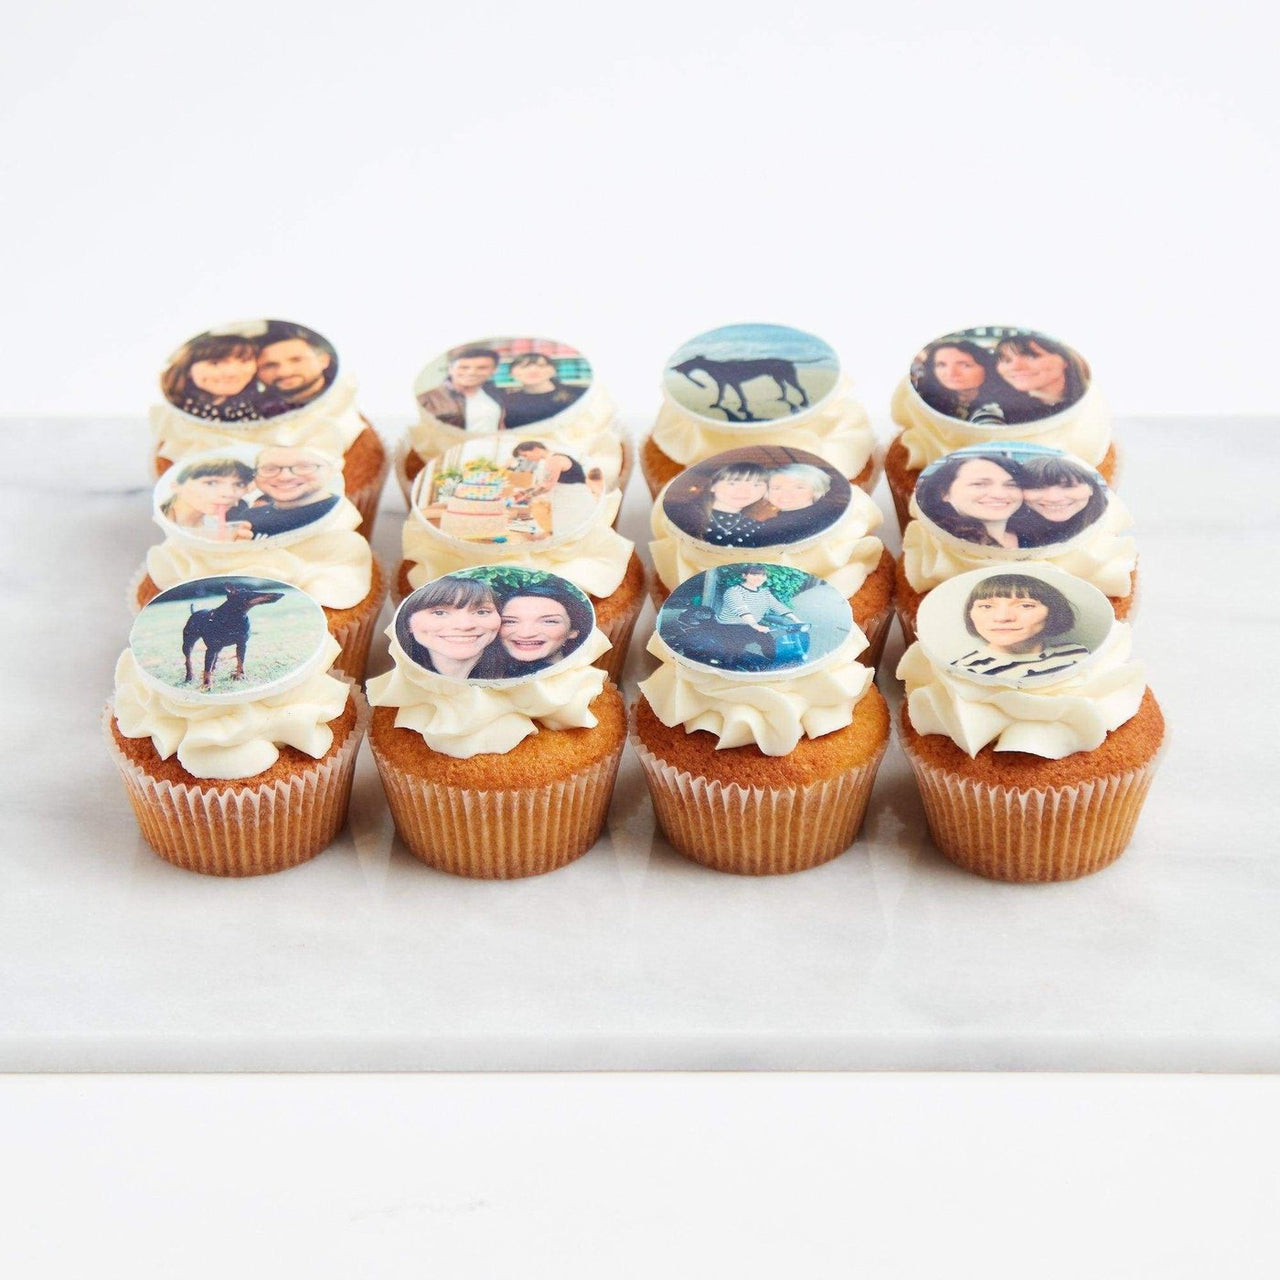 Edible Photo Cupcakes by Crumbs & Doilies